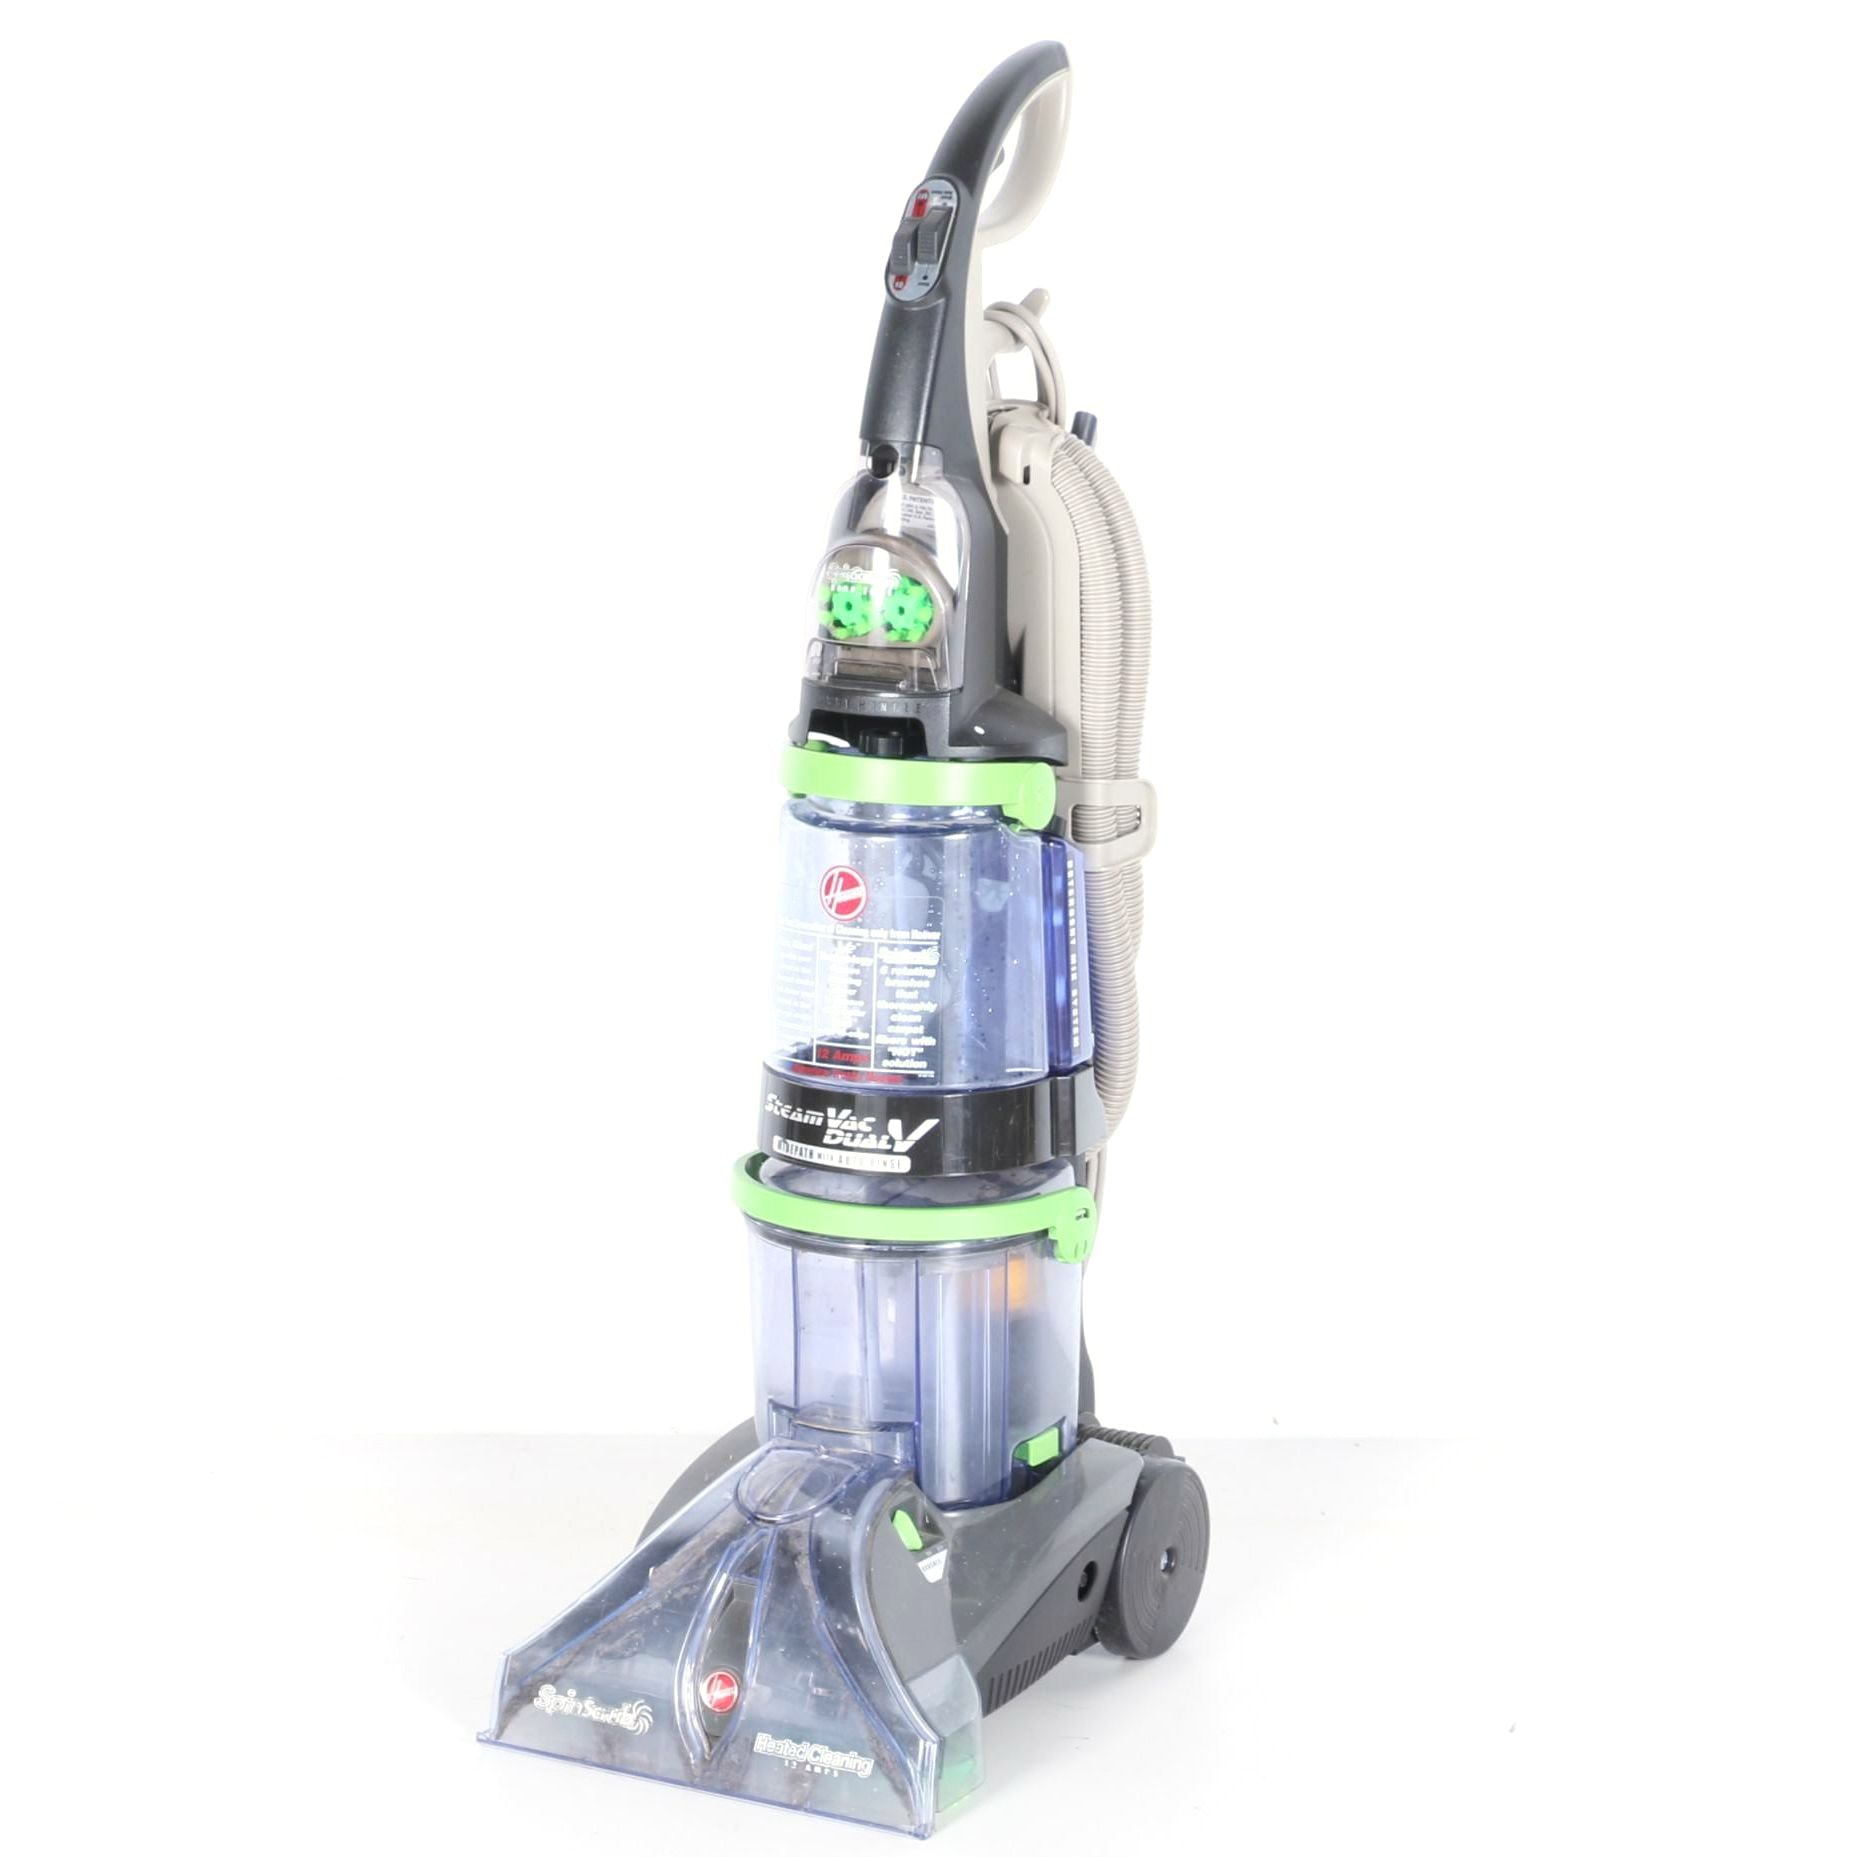 hoover steamvac dual v carpet cleaner